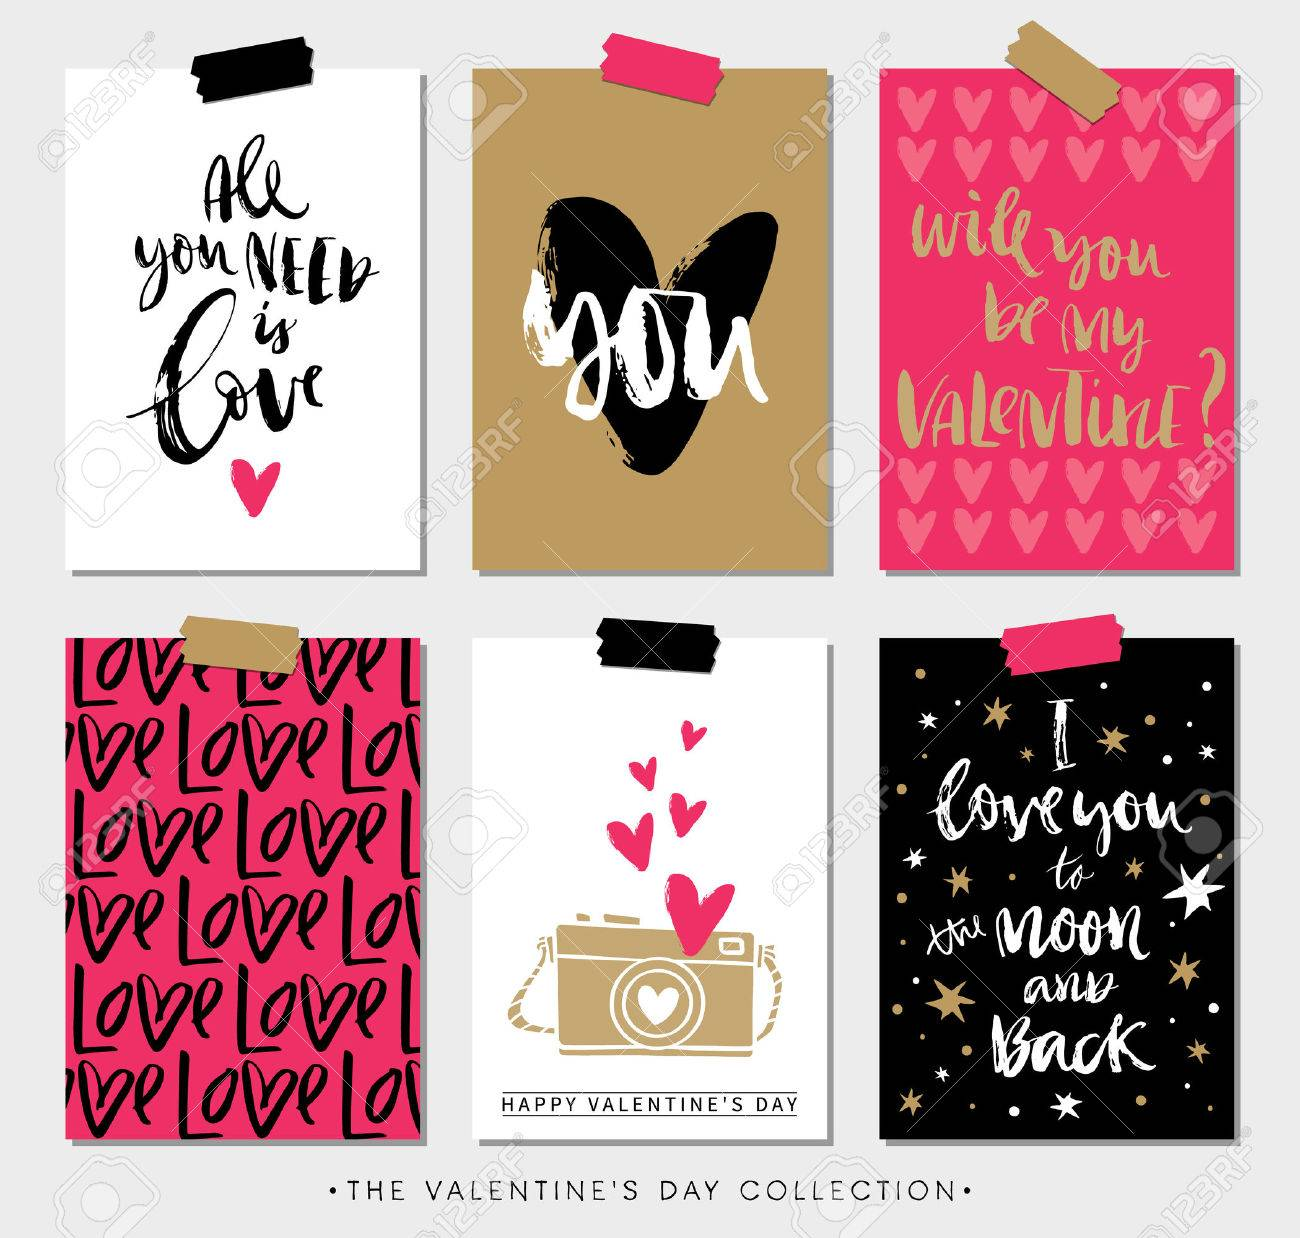 Valentines day gift tags and cards with calligraphy. Hand drawn design elements. Handwritten modern lettering. - 50909205